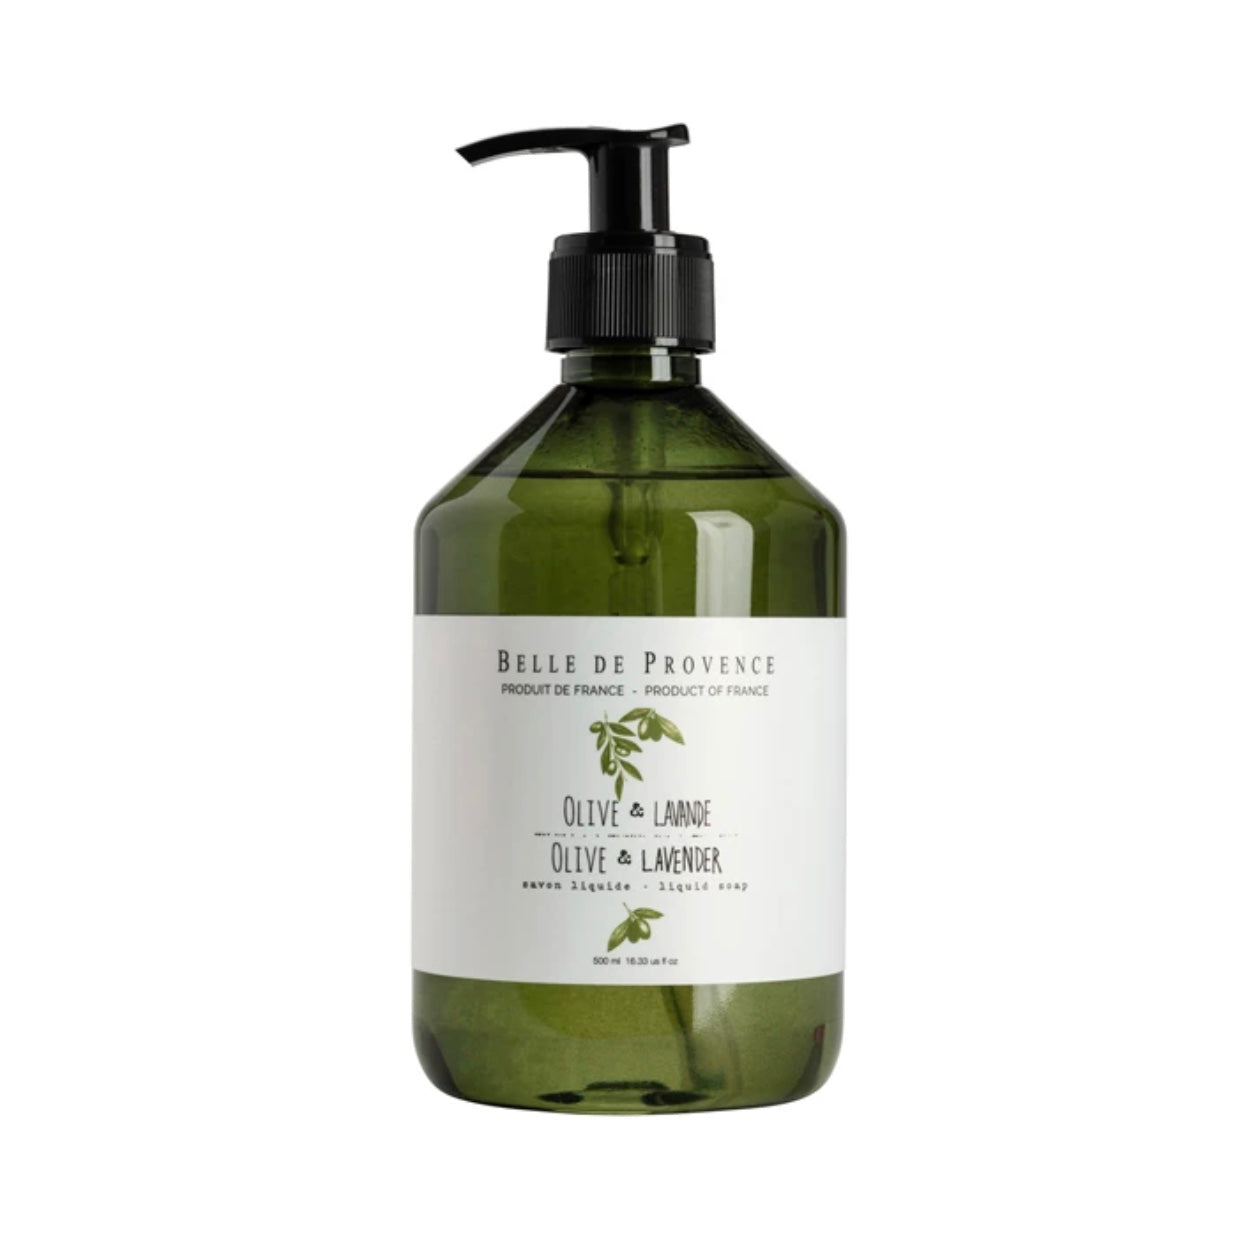 Belle de Provence Liquid Soap - Olive Lavender - Putti Fine Furnishings Canada